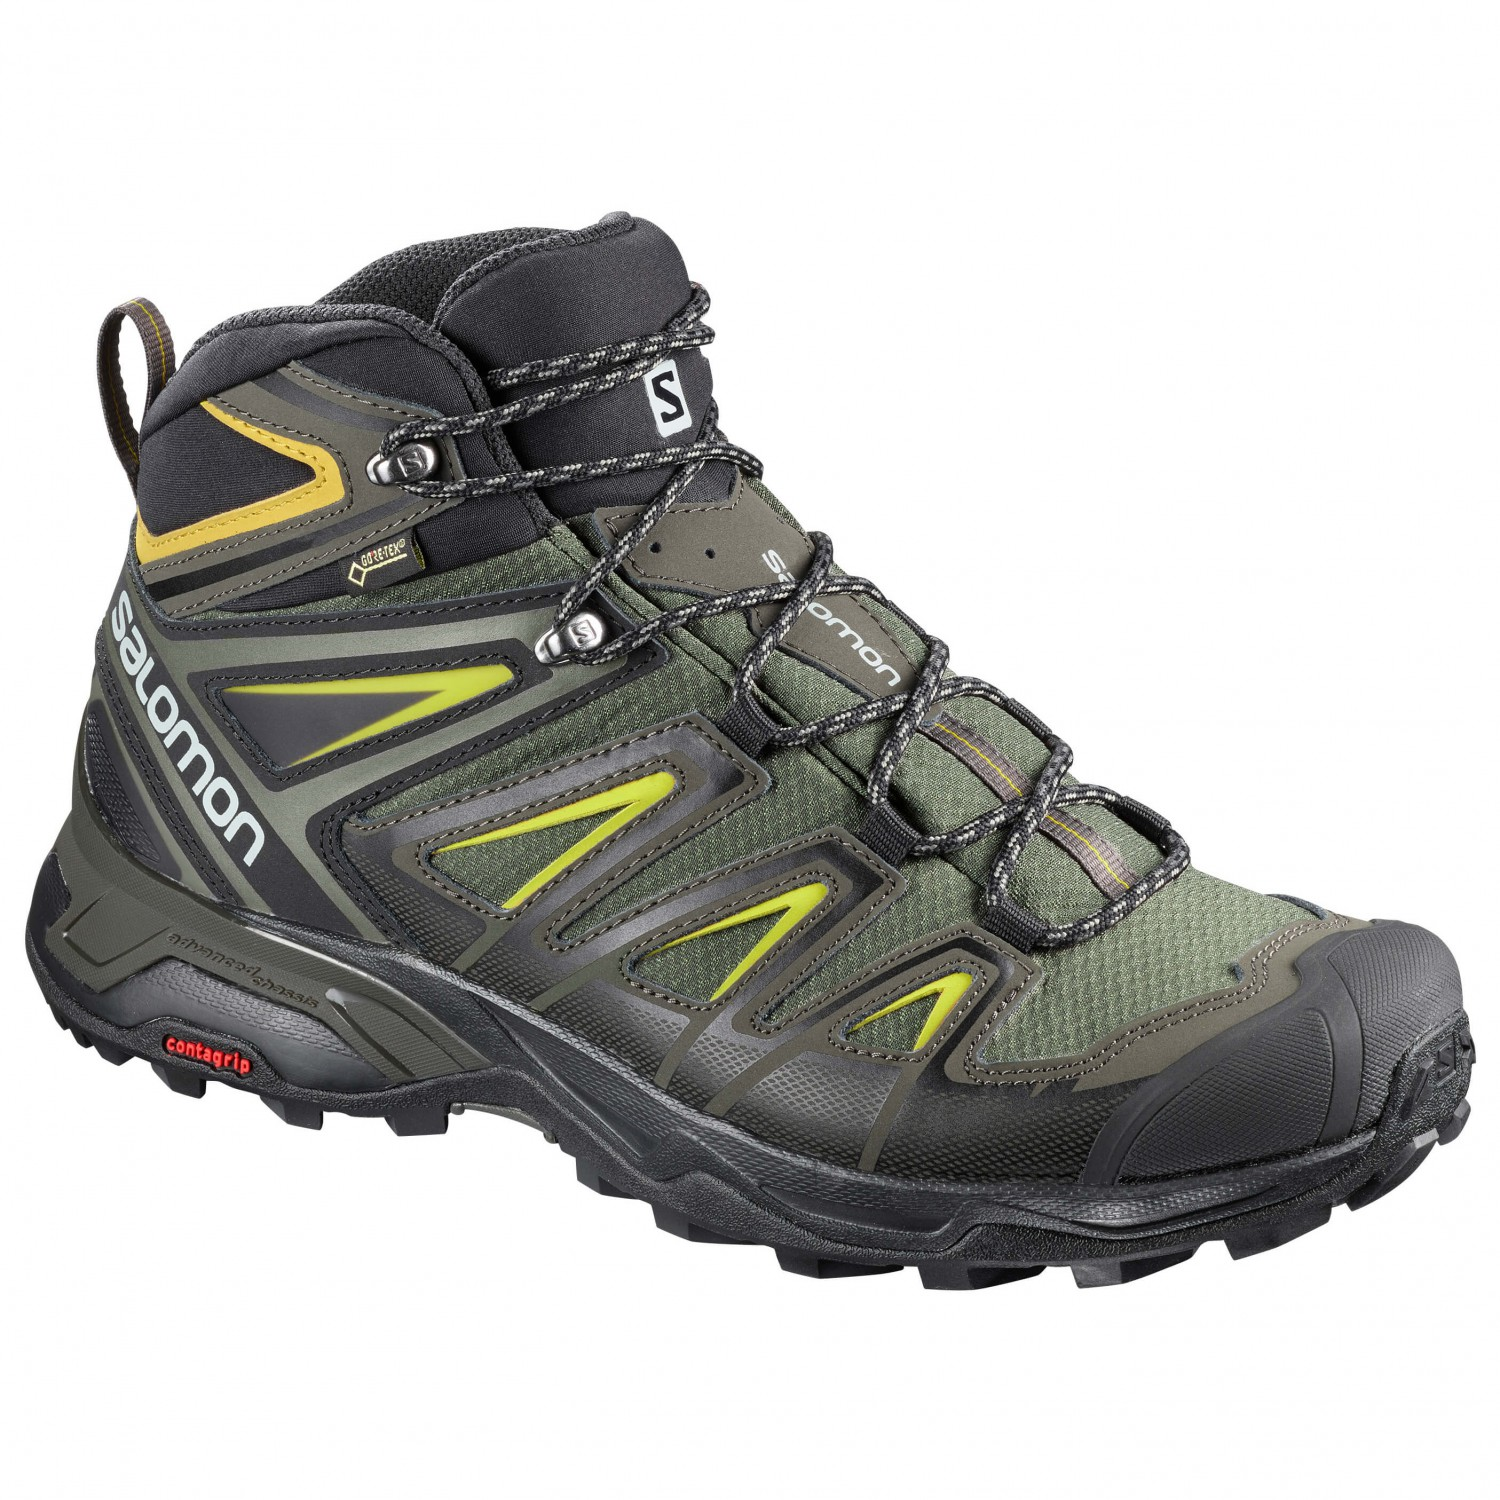 salomon men's x ultra 3 gtx low rise hiking shoes uk